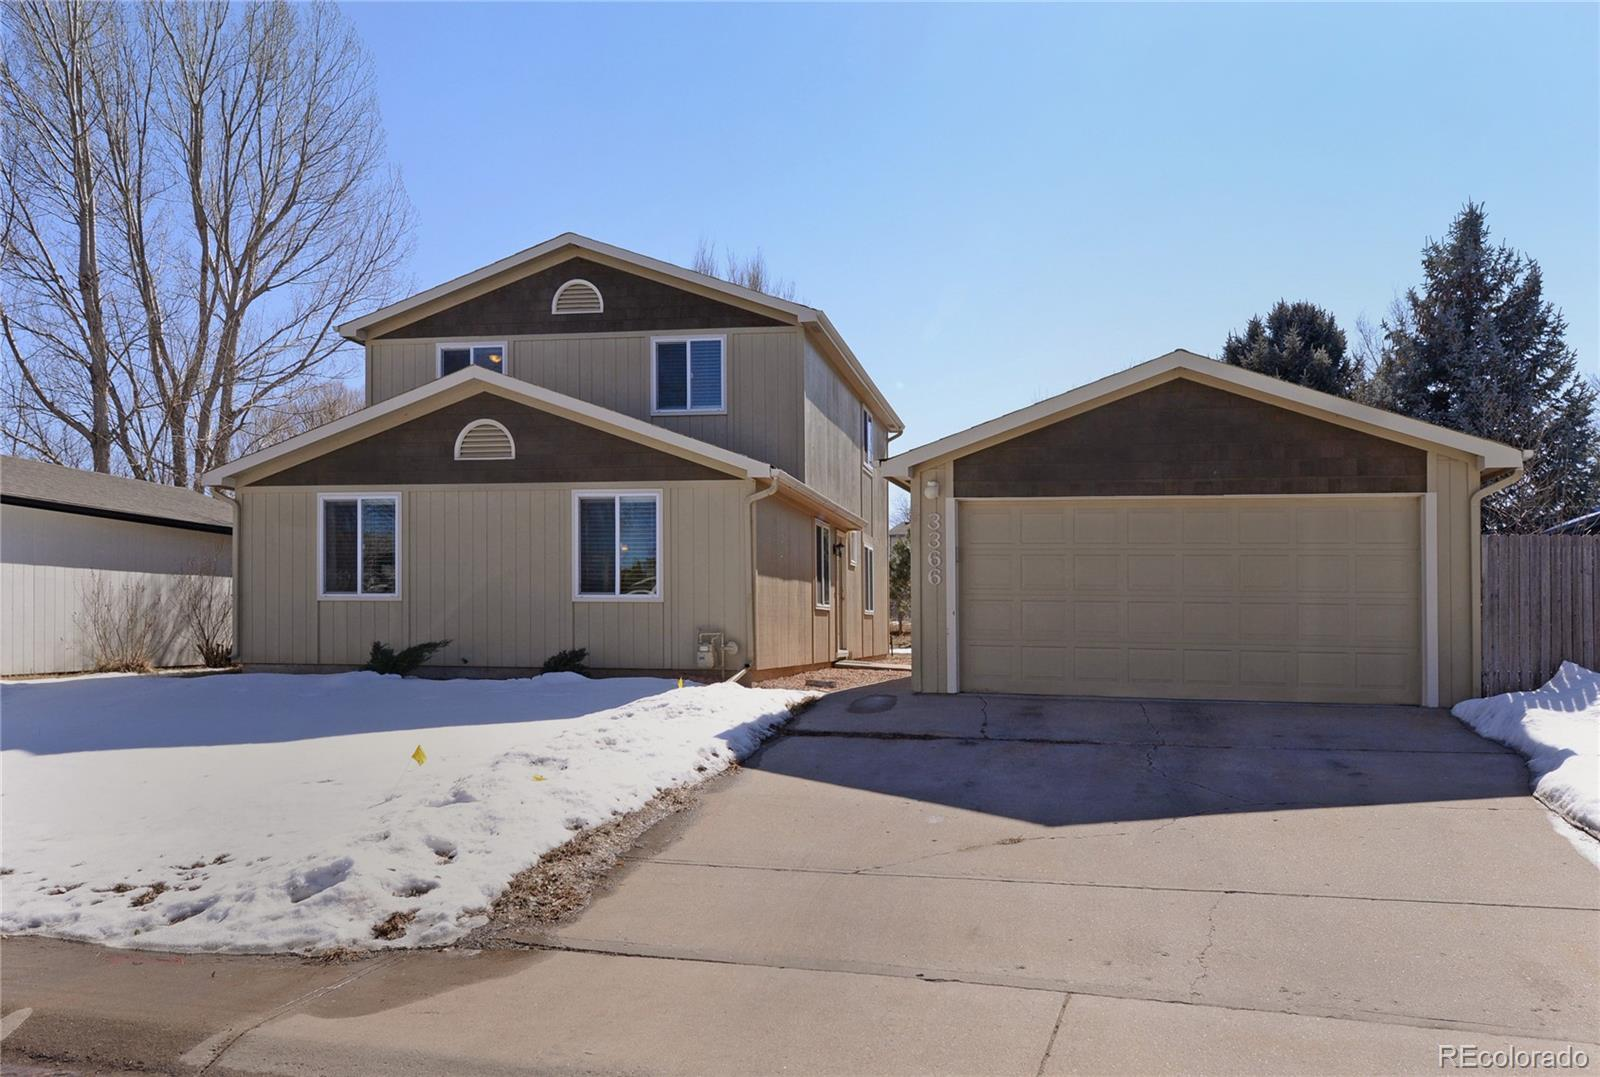 3366 Liverpool Street, Fort Collins, CO 80526 - #: 7760853